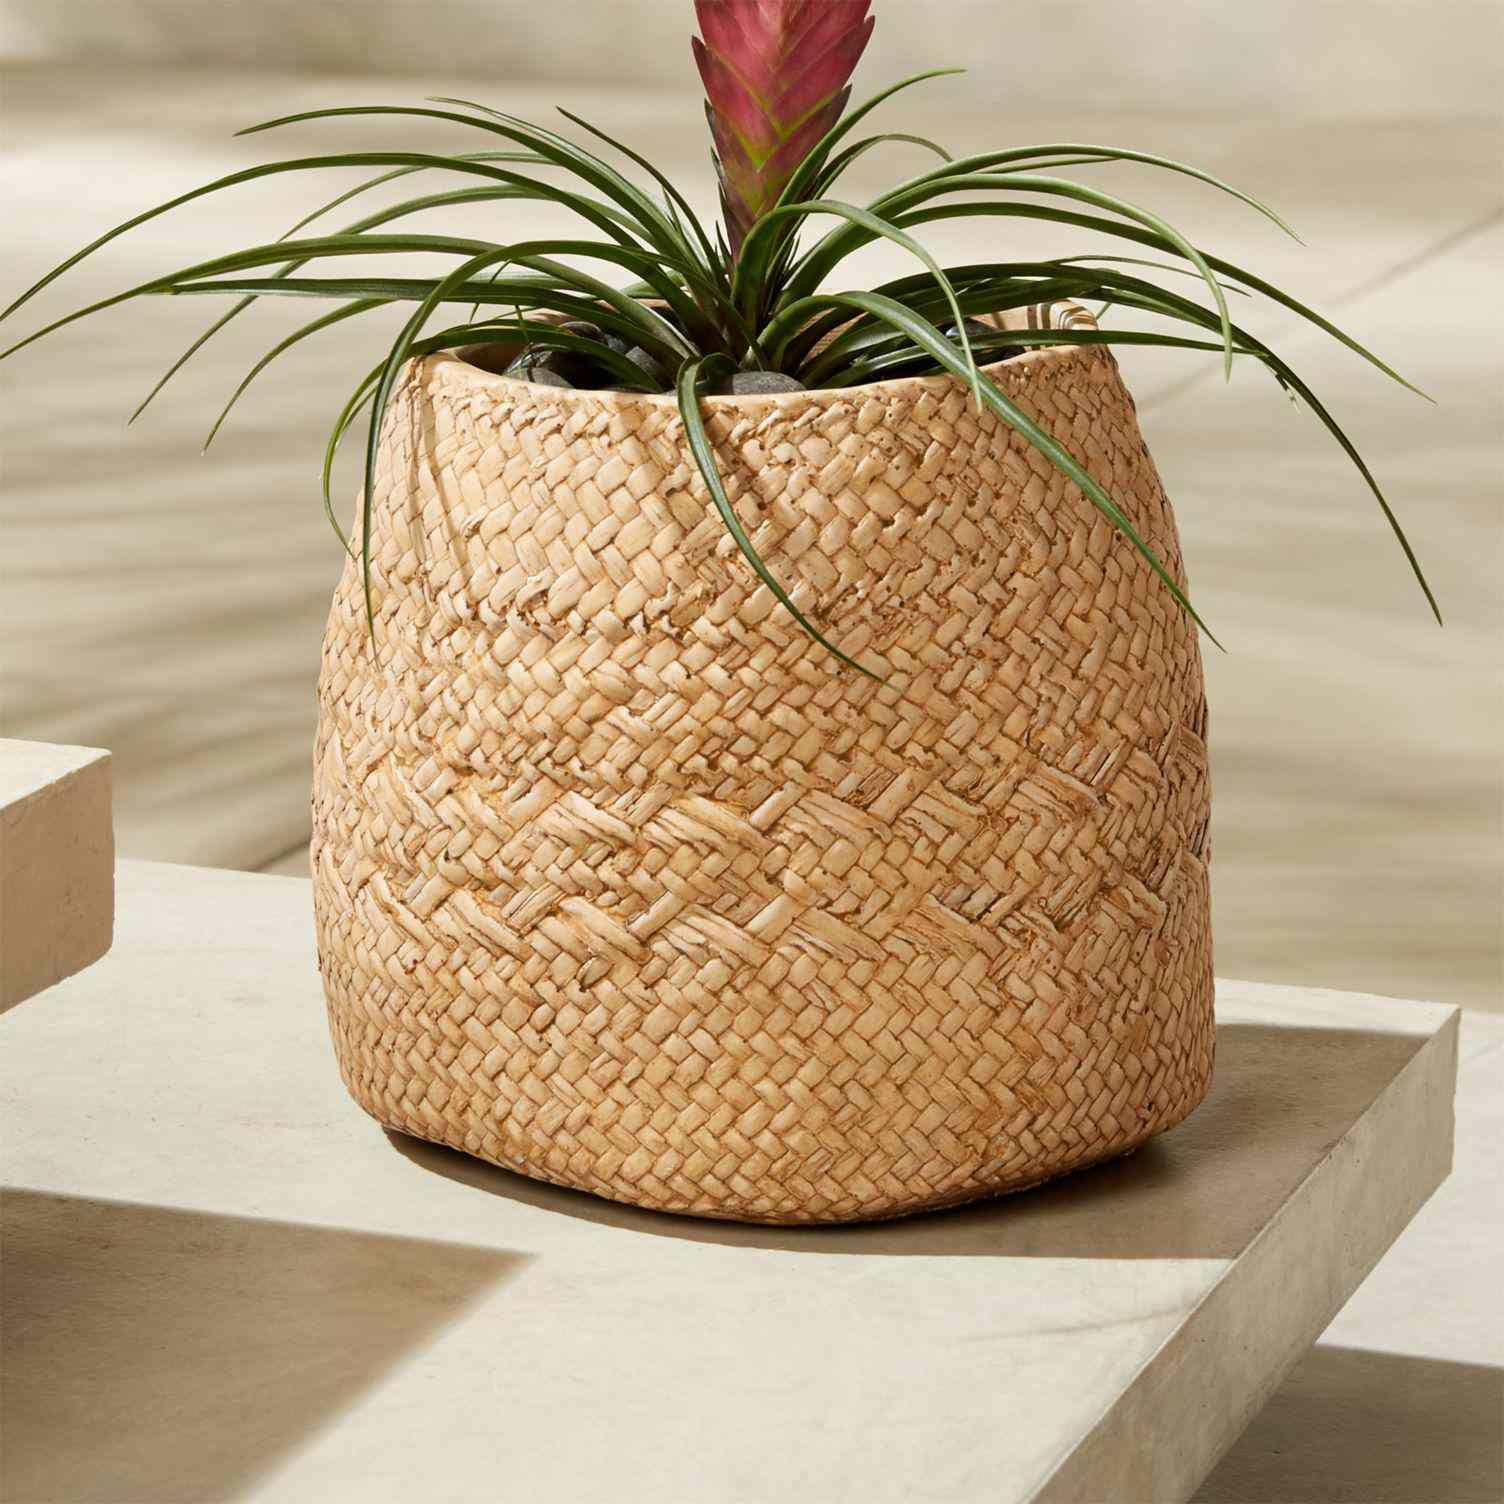 A cement planter made to look like a woven rattan basket.